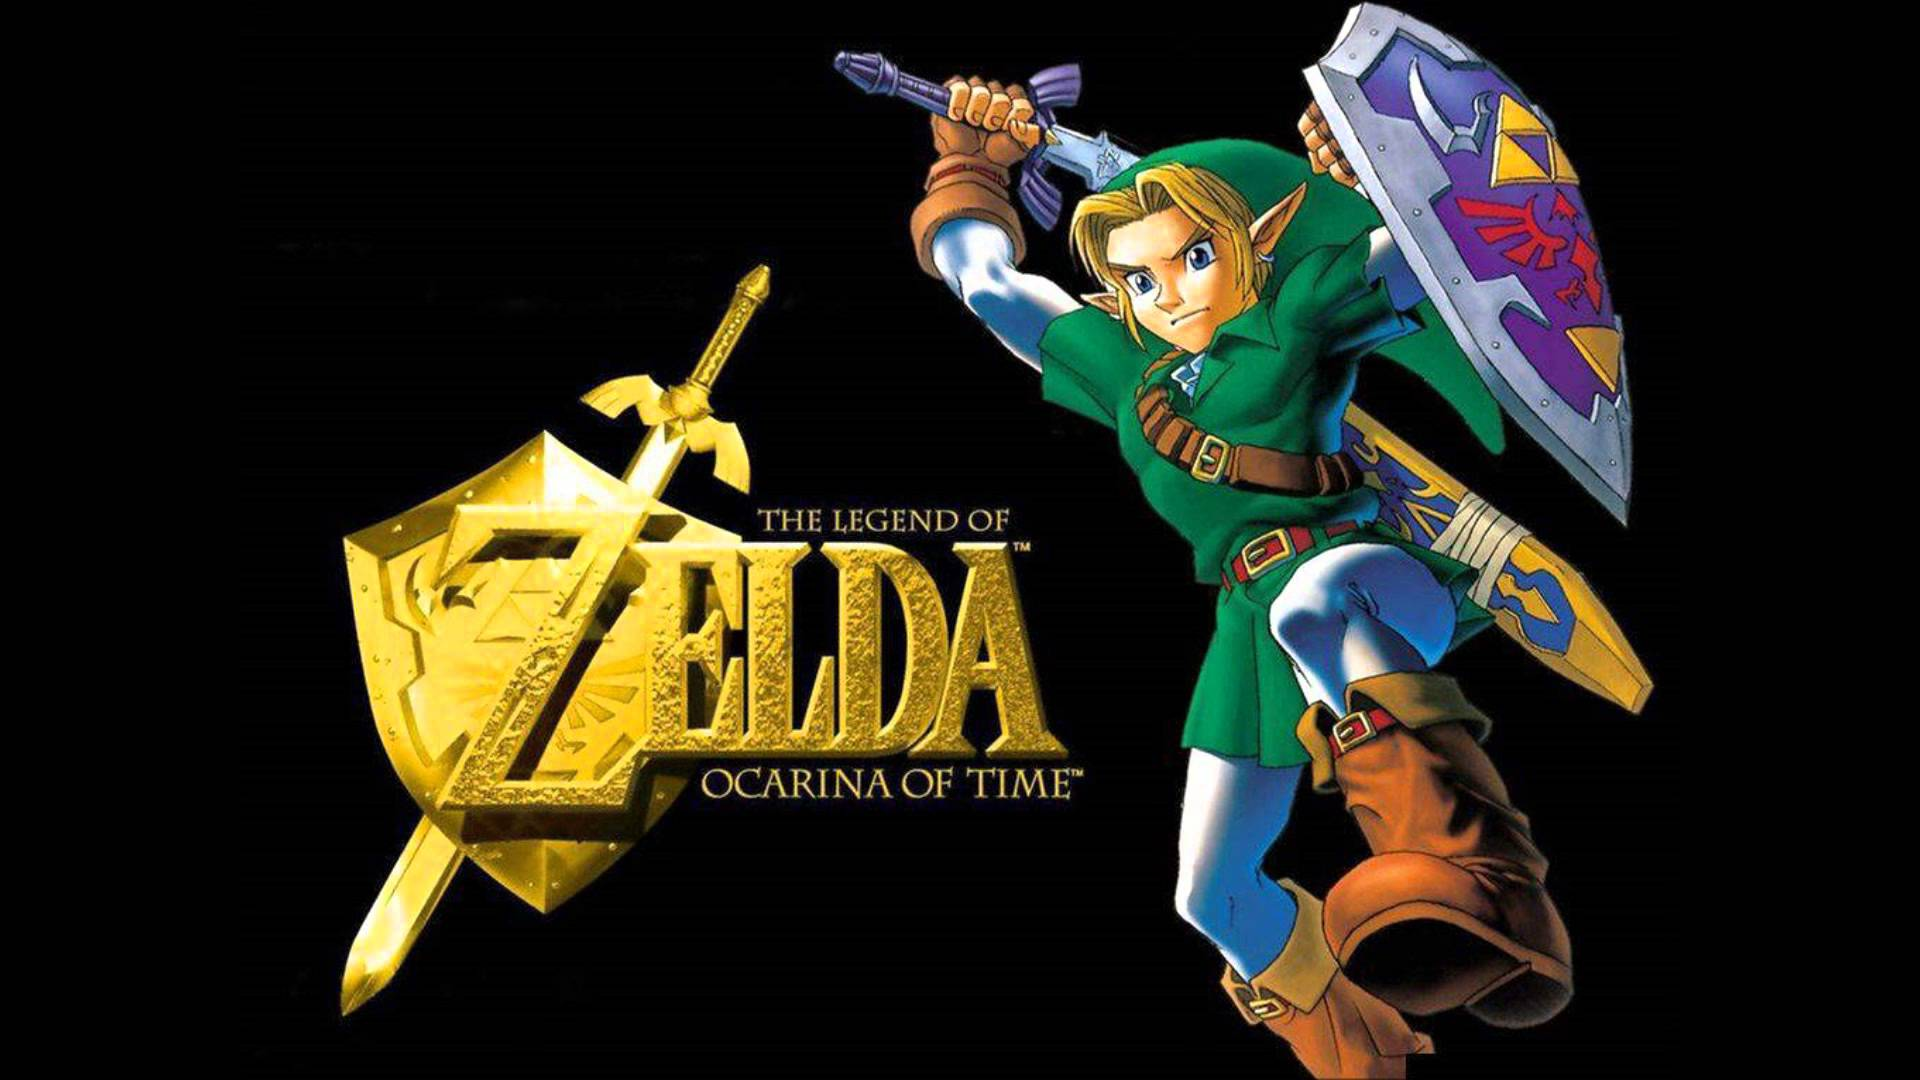 The Legend Of Zelda Ocarina Of Time Wallpaper Wallpapers Super